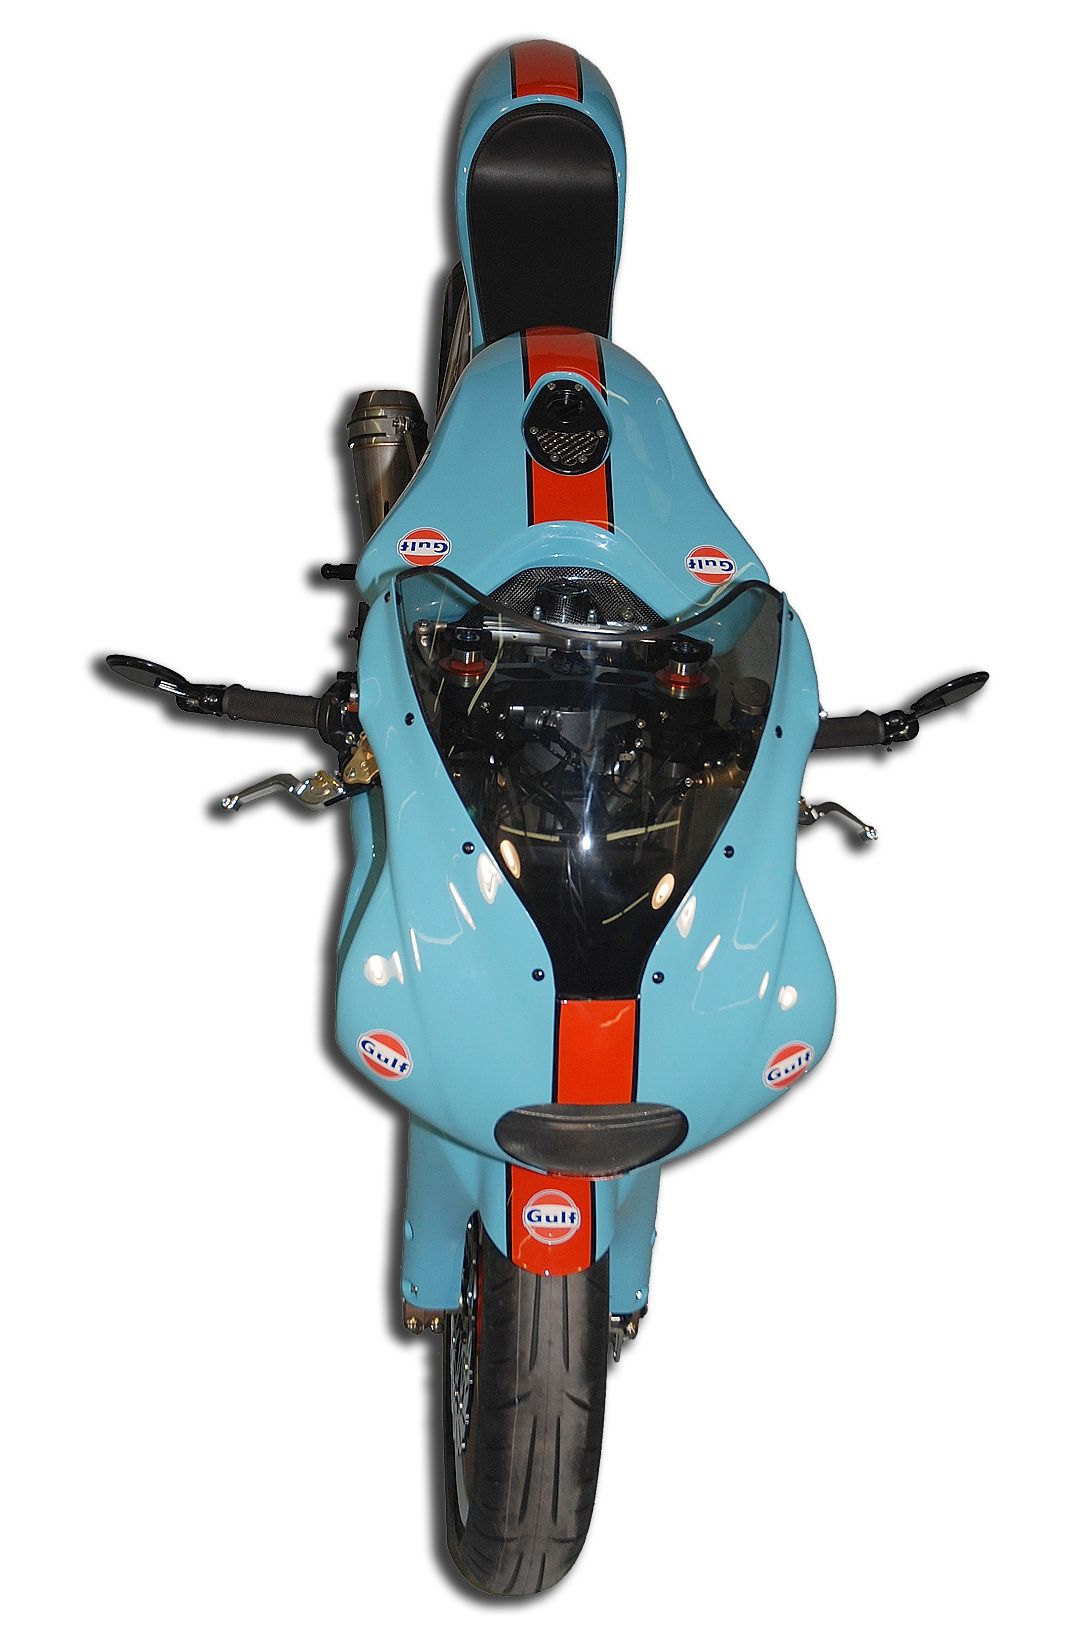 Custom Gulf Theme Ducati built by Moto Movito in Raleigh, NC